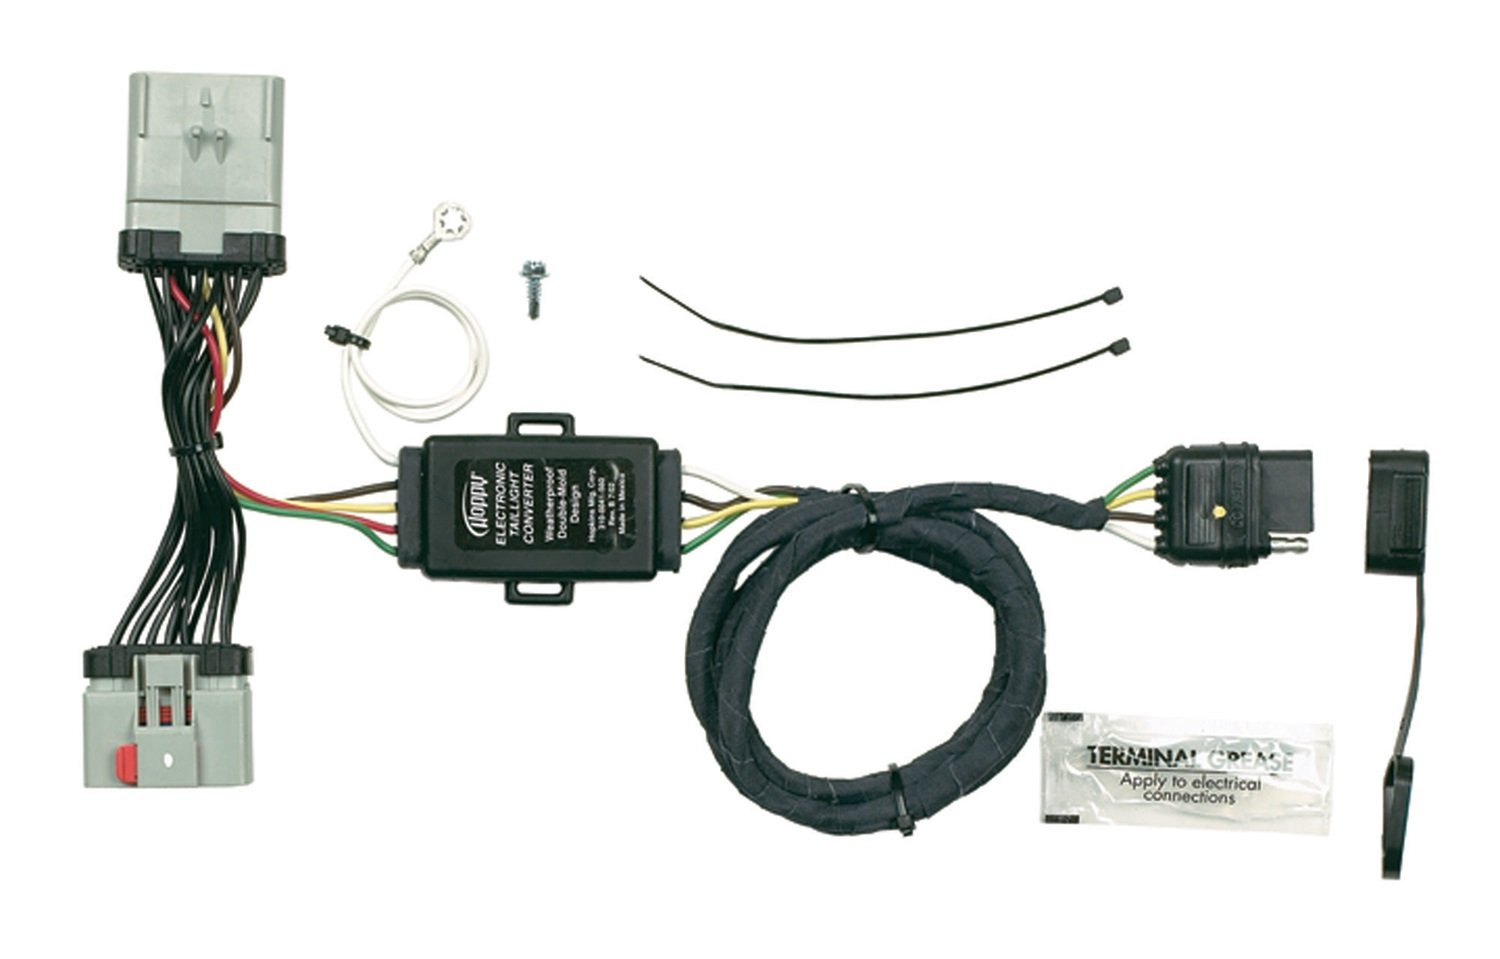 Hopkins 42475 Plug In Simple Vehicle Wiring Kit Automotive Trailer Light Harbor Freight